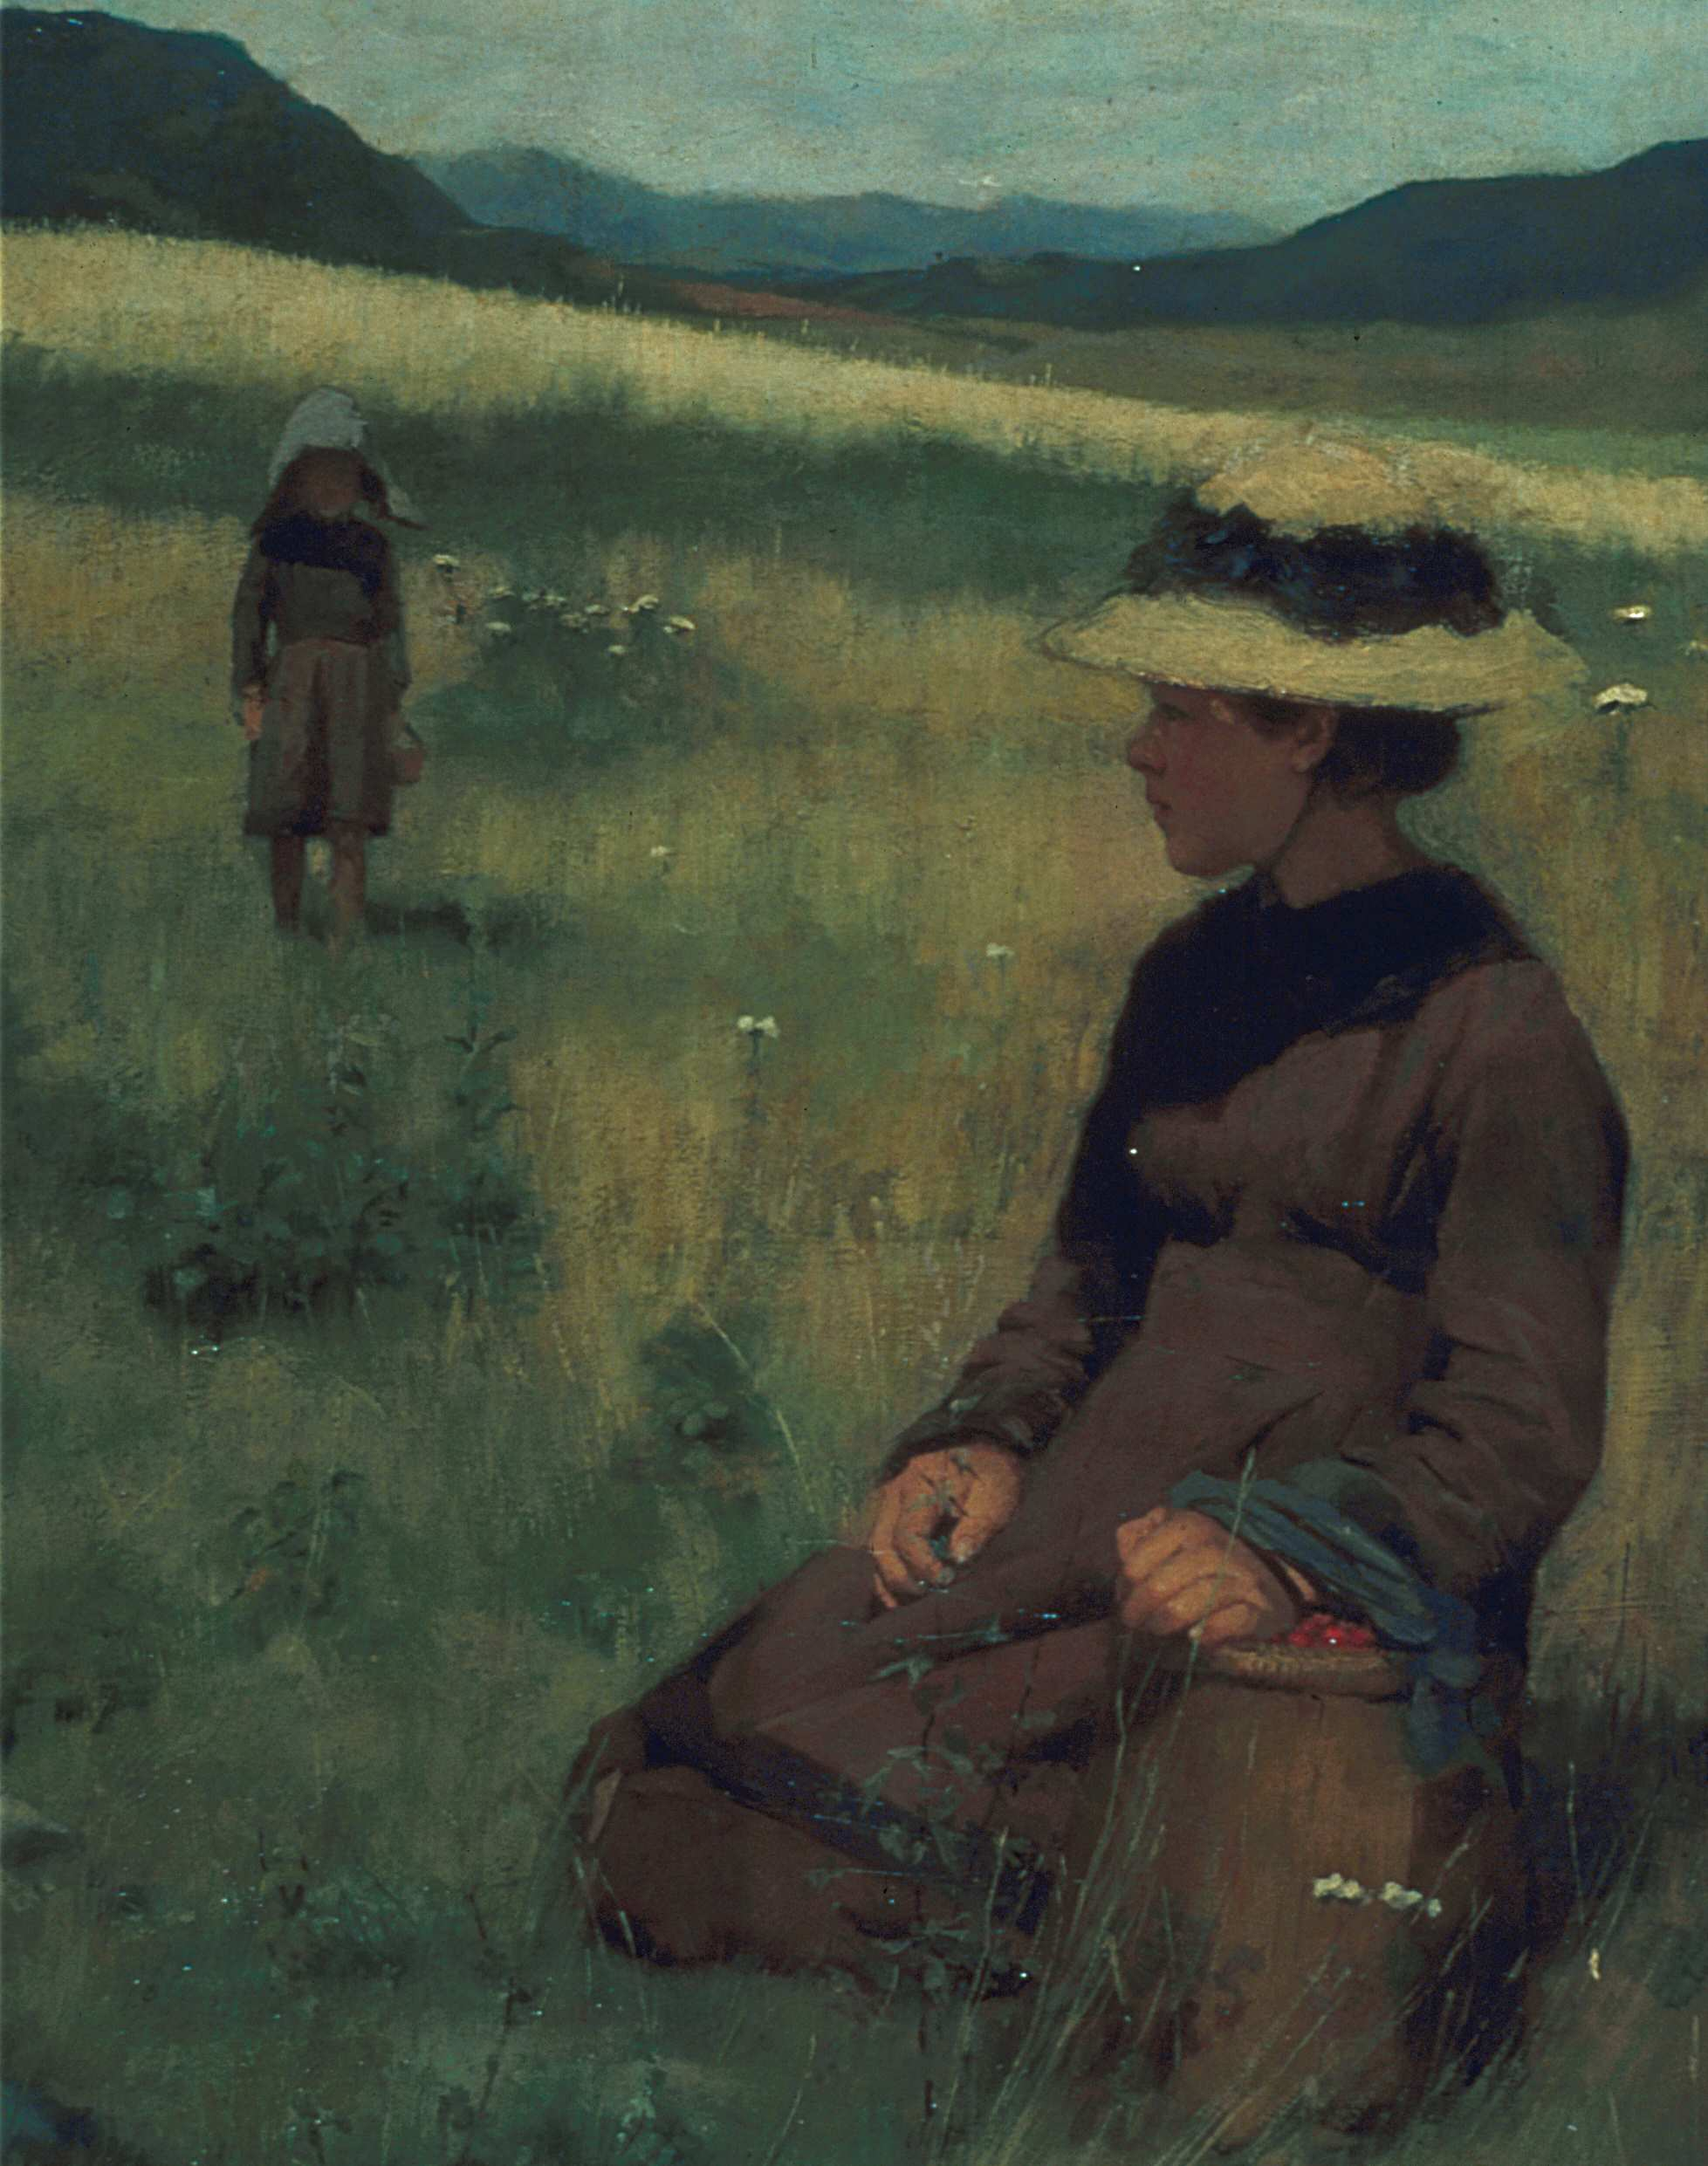 Painting of a kneeling girl picking strawberries in a field, with dark hills in the background.